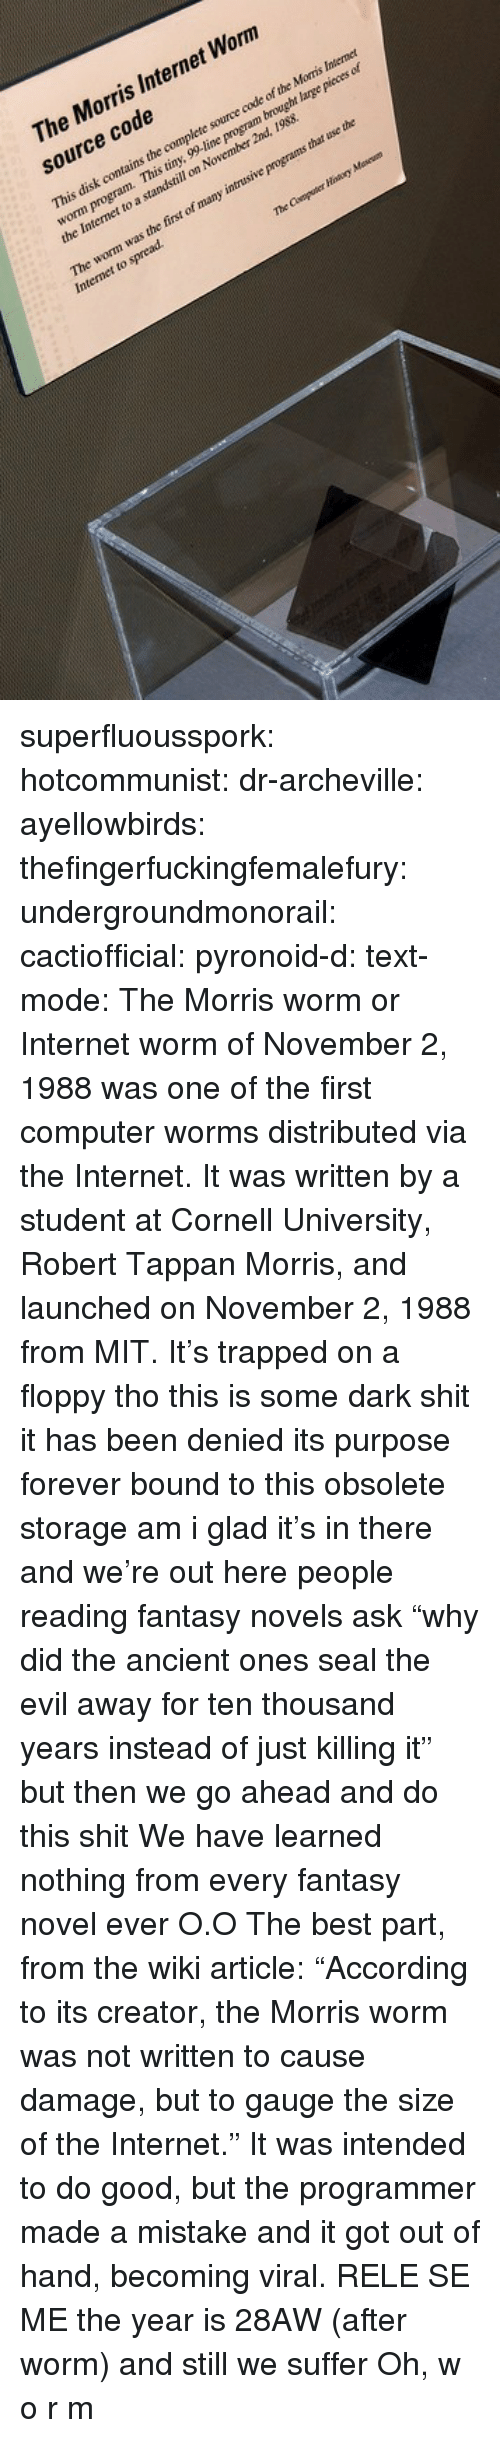 "Killing It: The Morris Internet Worm  source code  This disk contains the complete source code of the Morns Intemner  worm program.  This tiny, 99-line program brought  large pieces of  the Itermet  to a standstill on November 2nd, 1988  worm was the fint of many inrusive programs  that use the  Internet to spread superfluousspork: hotcommunist:  dr-archeville:  ayellowbirds:  thefingerfuckingfemalefury:  undergroundmonorail:  cactiofficial:  pyronoid-d:  text-mode:  The Morris worm or Internet worm of November 2, 1988 was one of the first computer worms distributed via the Internet. It was written by a student at Cornell University, Robert Tappan Morris, and launched on November 2, 1988 from MIT.  It's trapped on a floppy tho this is some dark shit it has been denied its purpose forever bound to this obsolete storage  am i glad it's in there and we're out here  people reading fantasy novels ask ""why did the ancient ones seal the evil away for ten thousand years instead of just killing it"" but then we go ahead and do this shit  We have learned nothing from every fantasy novel ever O.O  The best part, from the wiki article: ""According to its creator, the Morris worm was not written to cause damage, but to gauge the size of the Internet."" It was intended to do good, but the programmer made a mistake and it got out of hand, becoming viral.   R̴͓̮͈̞̿͐͛̏̒͂͊̾ͅE͉̝͍̹̣̺̿͗͟͝L̶͖̫͇͙̬ͬ͗͌͘E̻͔̳ͪͭ̑̔̉̉̑ͣ͝͝ͅẢ̲̳̝̗̮ͩS̼̮̠̦͍͈̳̝ͮ̌ͯͯ̌͆͗͠ͅEͦ̎̊͏̪͙̤̦͈̯̱͞͠ ̱̃ͥ̆̄M̛̝̘̺̥̙̱͚ͣ̋͊̚E̪̮͍̘̟̟͚͖͐   the year is 28AW (after worm) and still we suffer   Oh, w o r m"